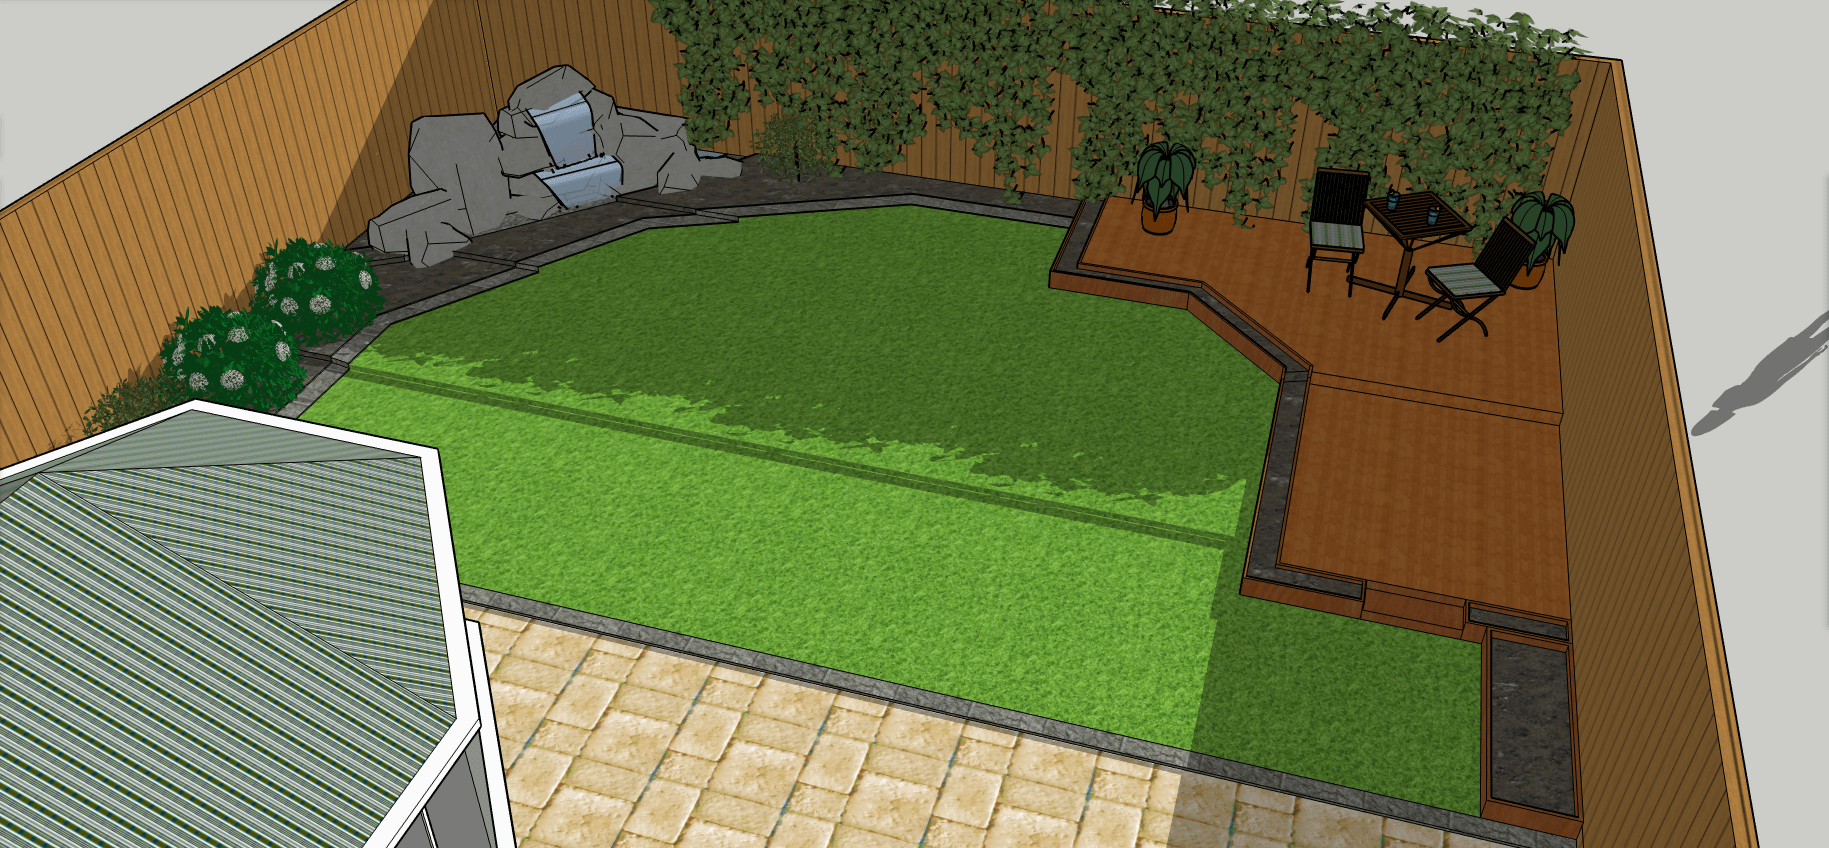 Birds eye view of 3d garden design including decking, water feature and paving